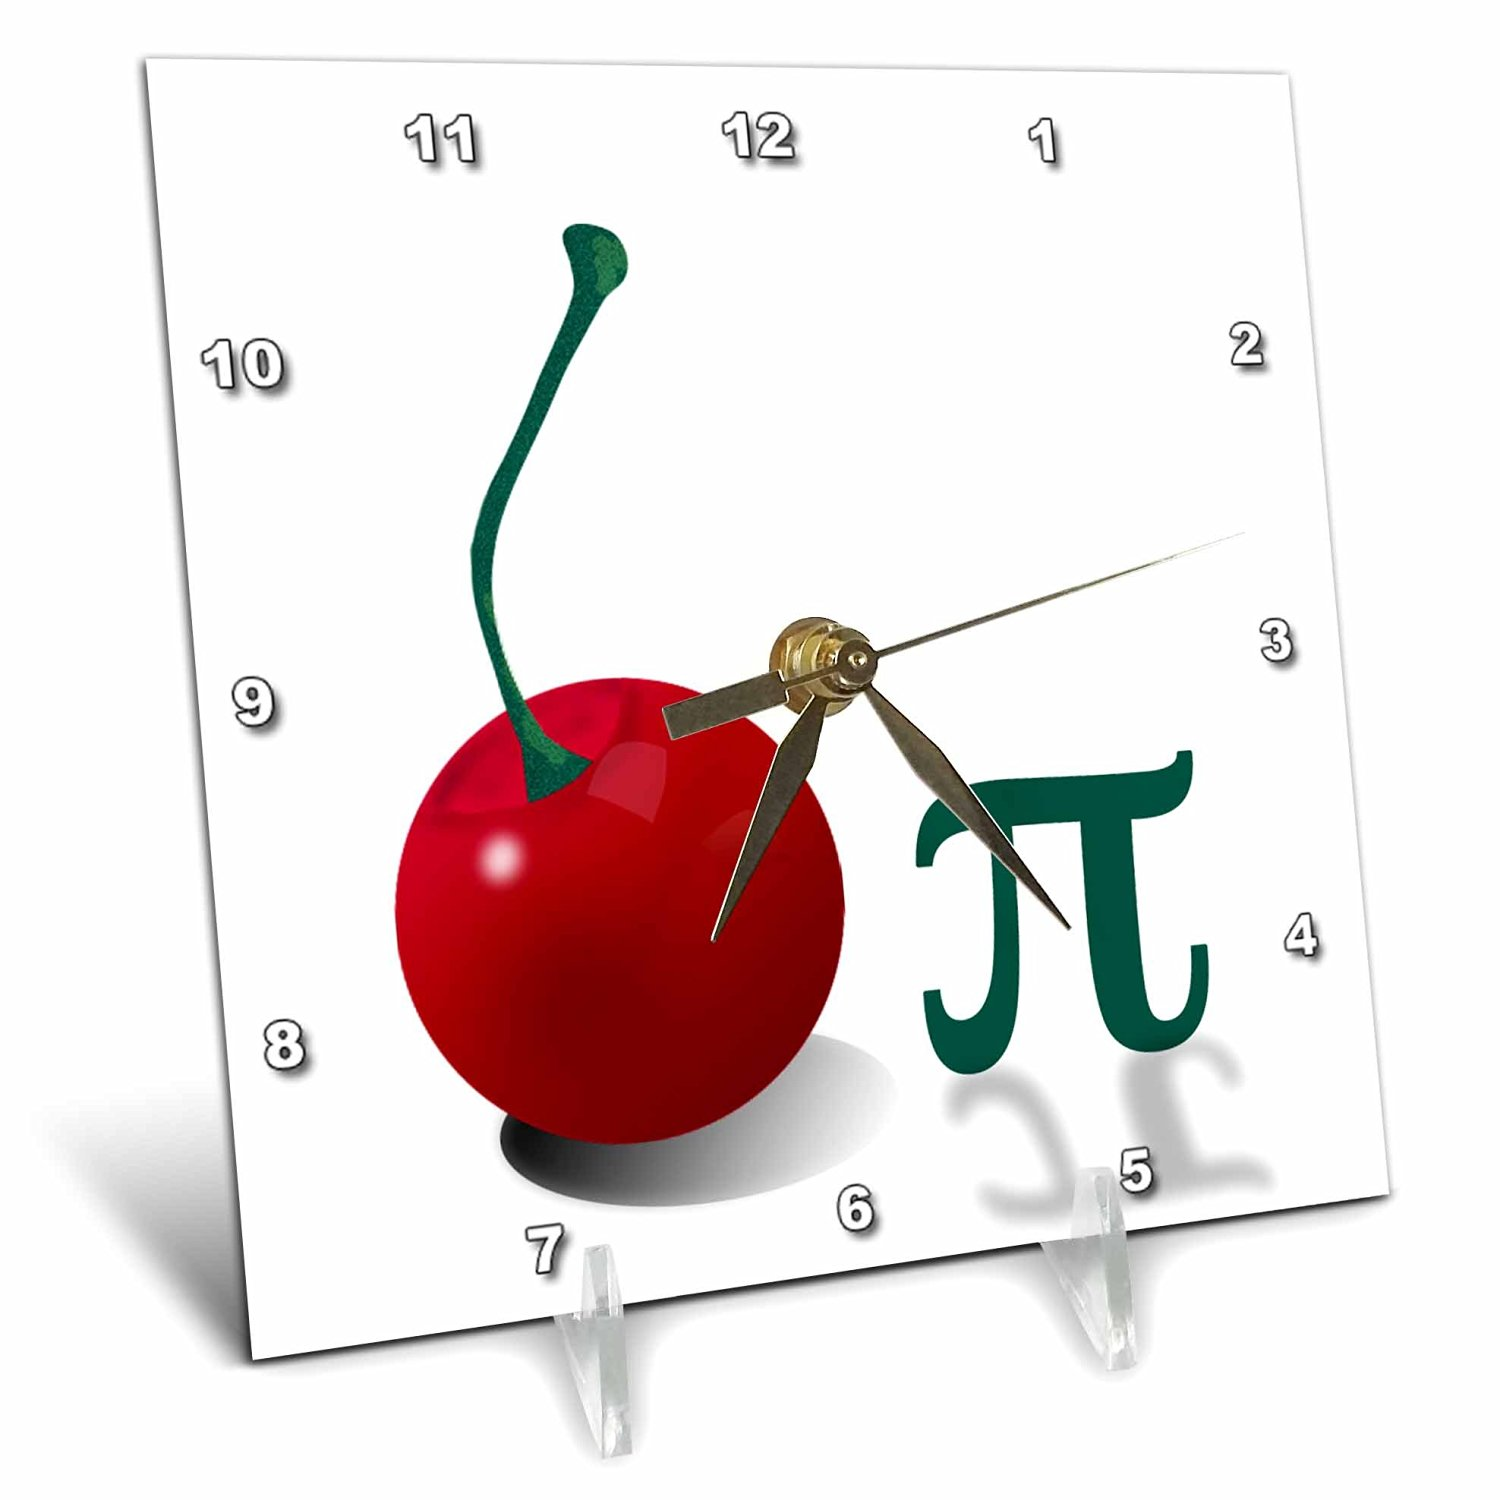 3dRose cherry Pi. Large Red cherry and The Pi Symbol. Mathematicians Dream. - Desk Clock, 6 by 6-Inch (dc_45202_1)